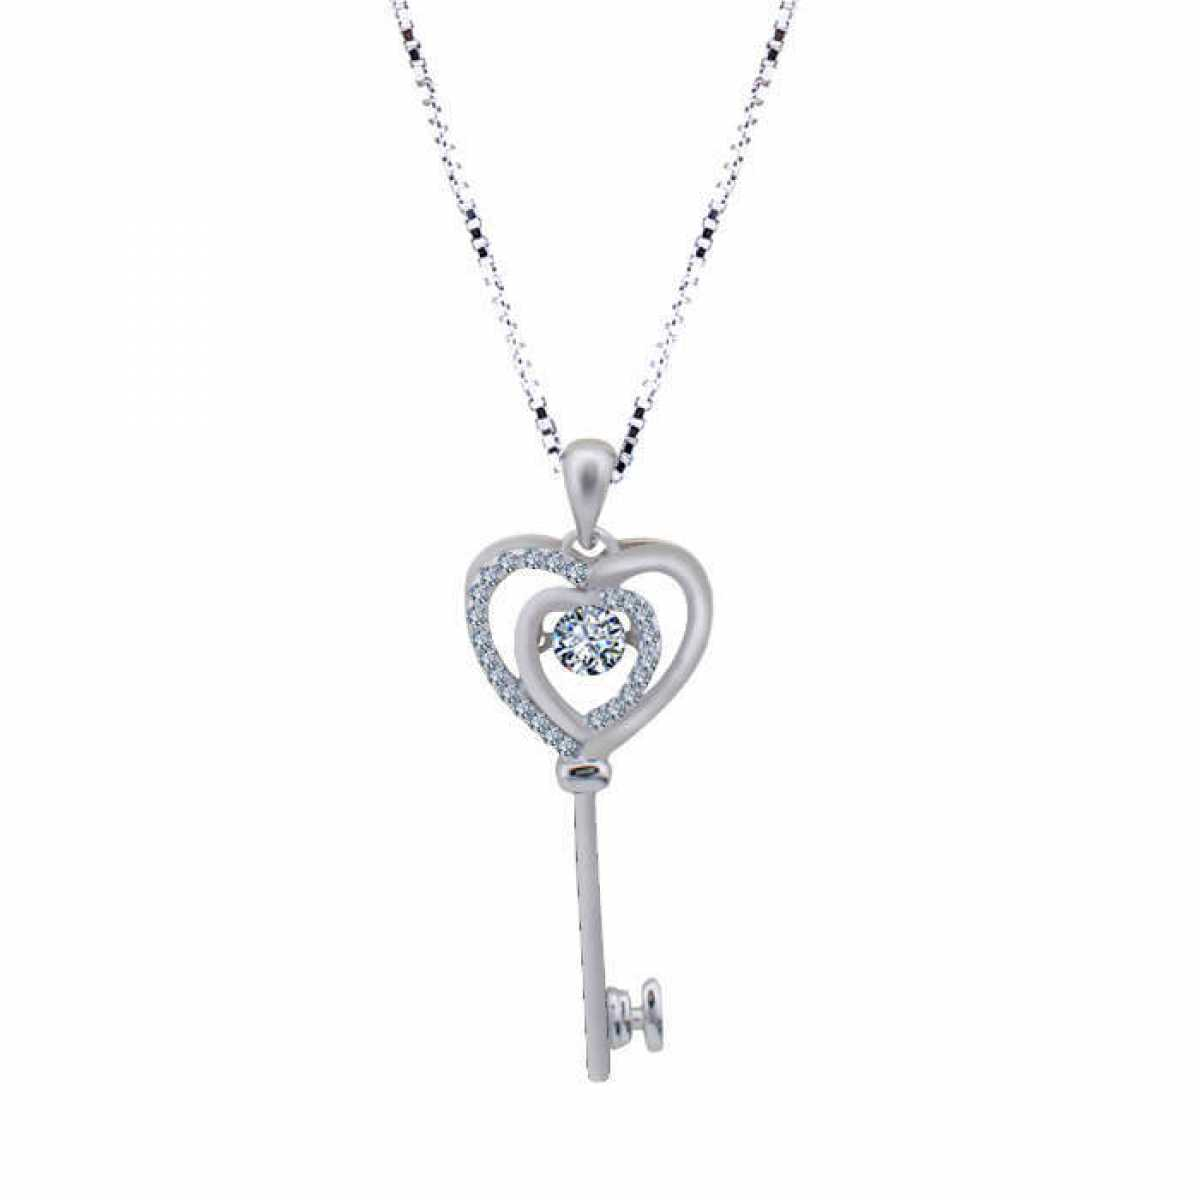 Love Key Double Heart Chain